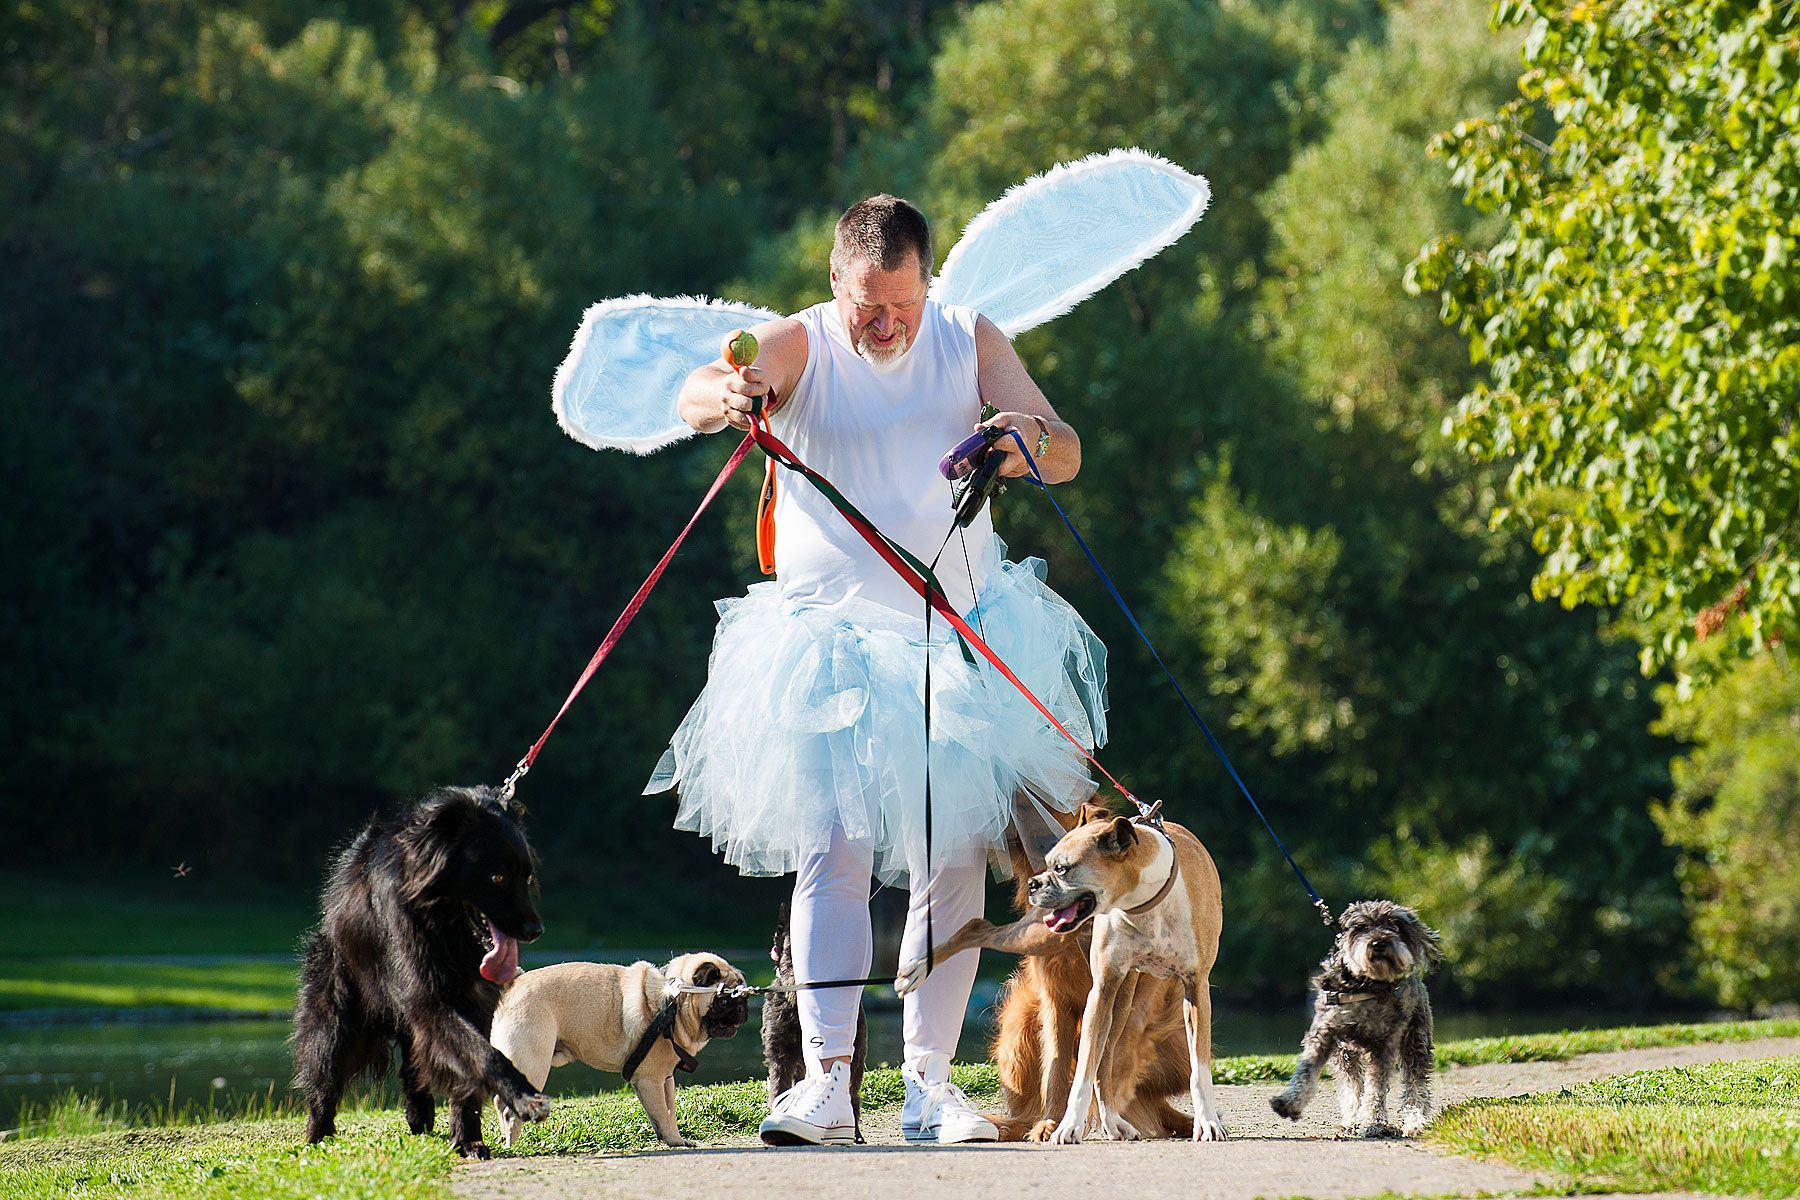 The Tooth Fairy picks up extra cash walking dogs.